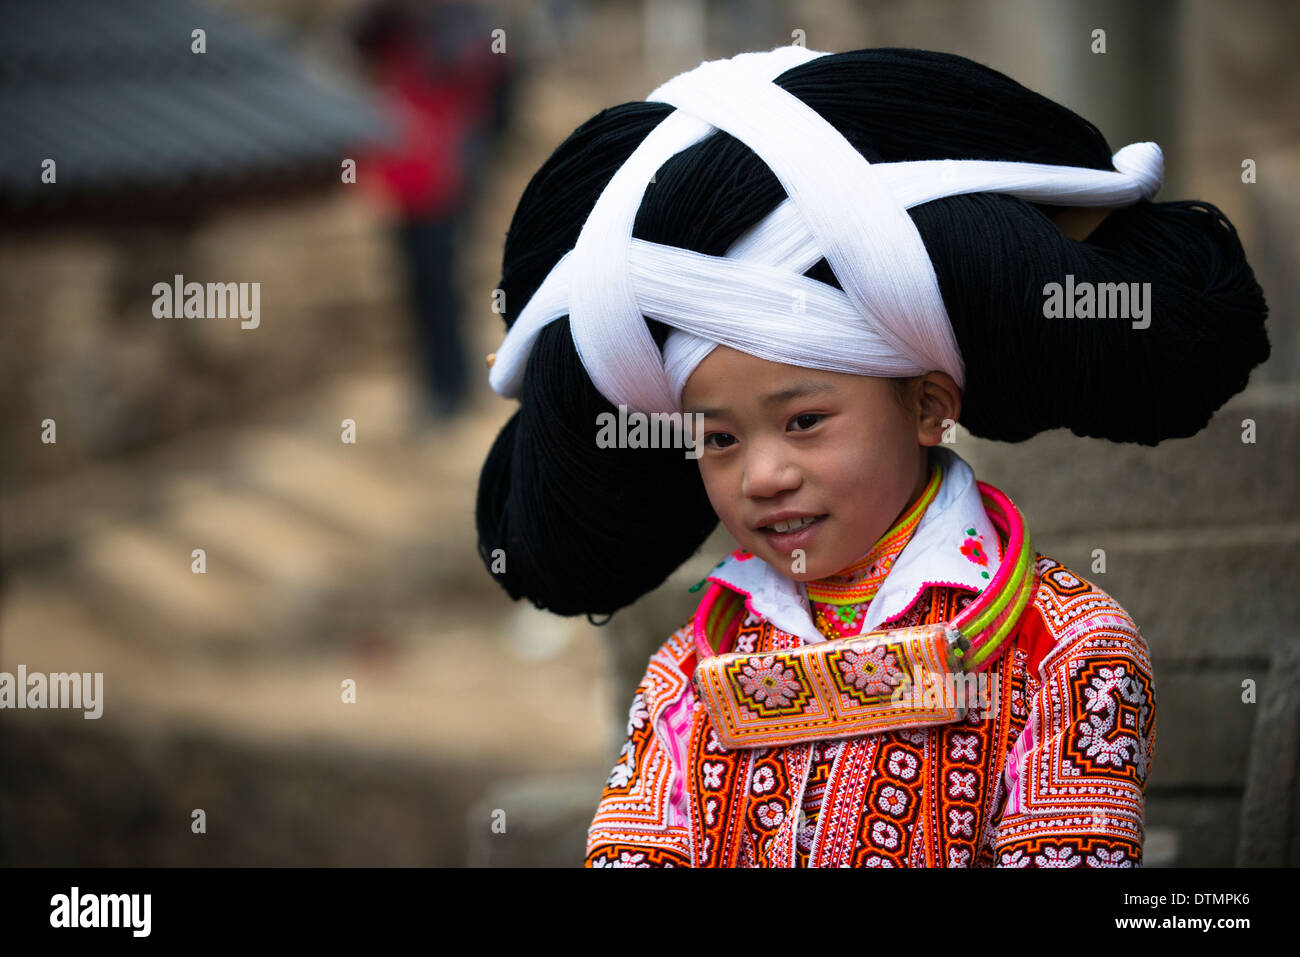 A Long Horn Miao little girl in traditional costumes dancing to celebrate the Tiao Hua festival / spring festival in Guizhou. - Stock Image